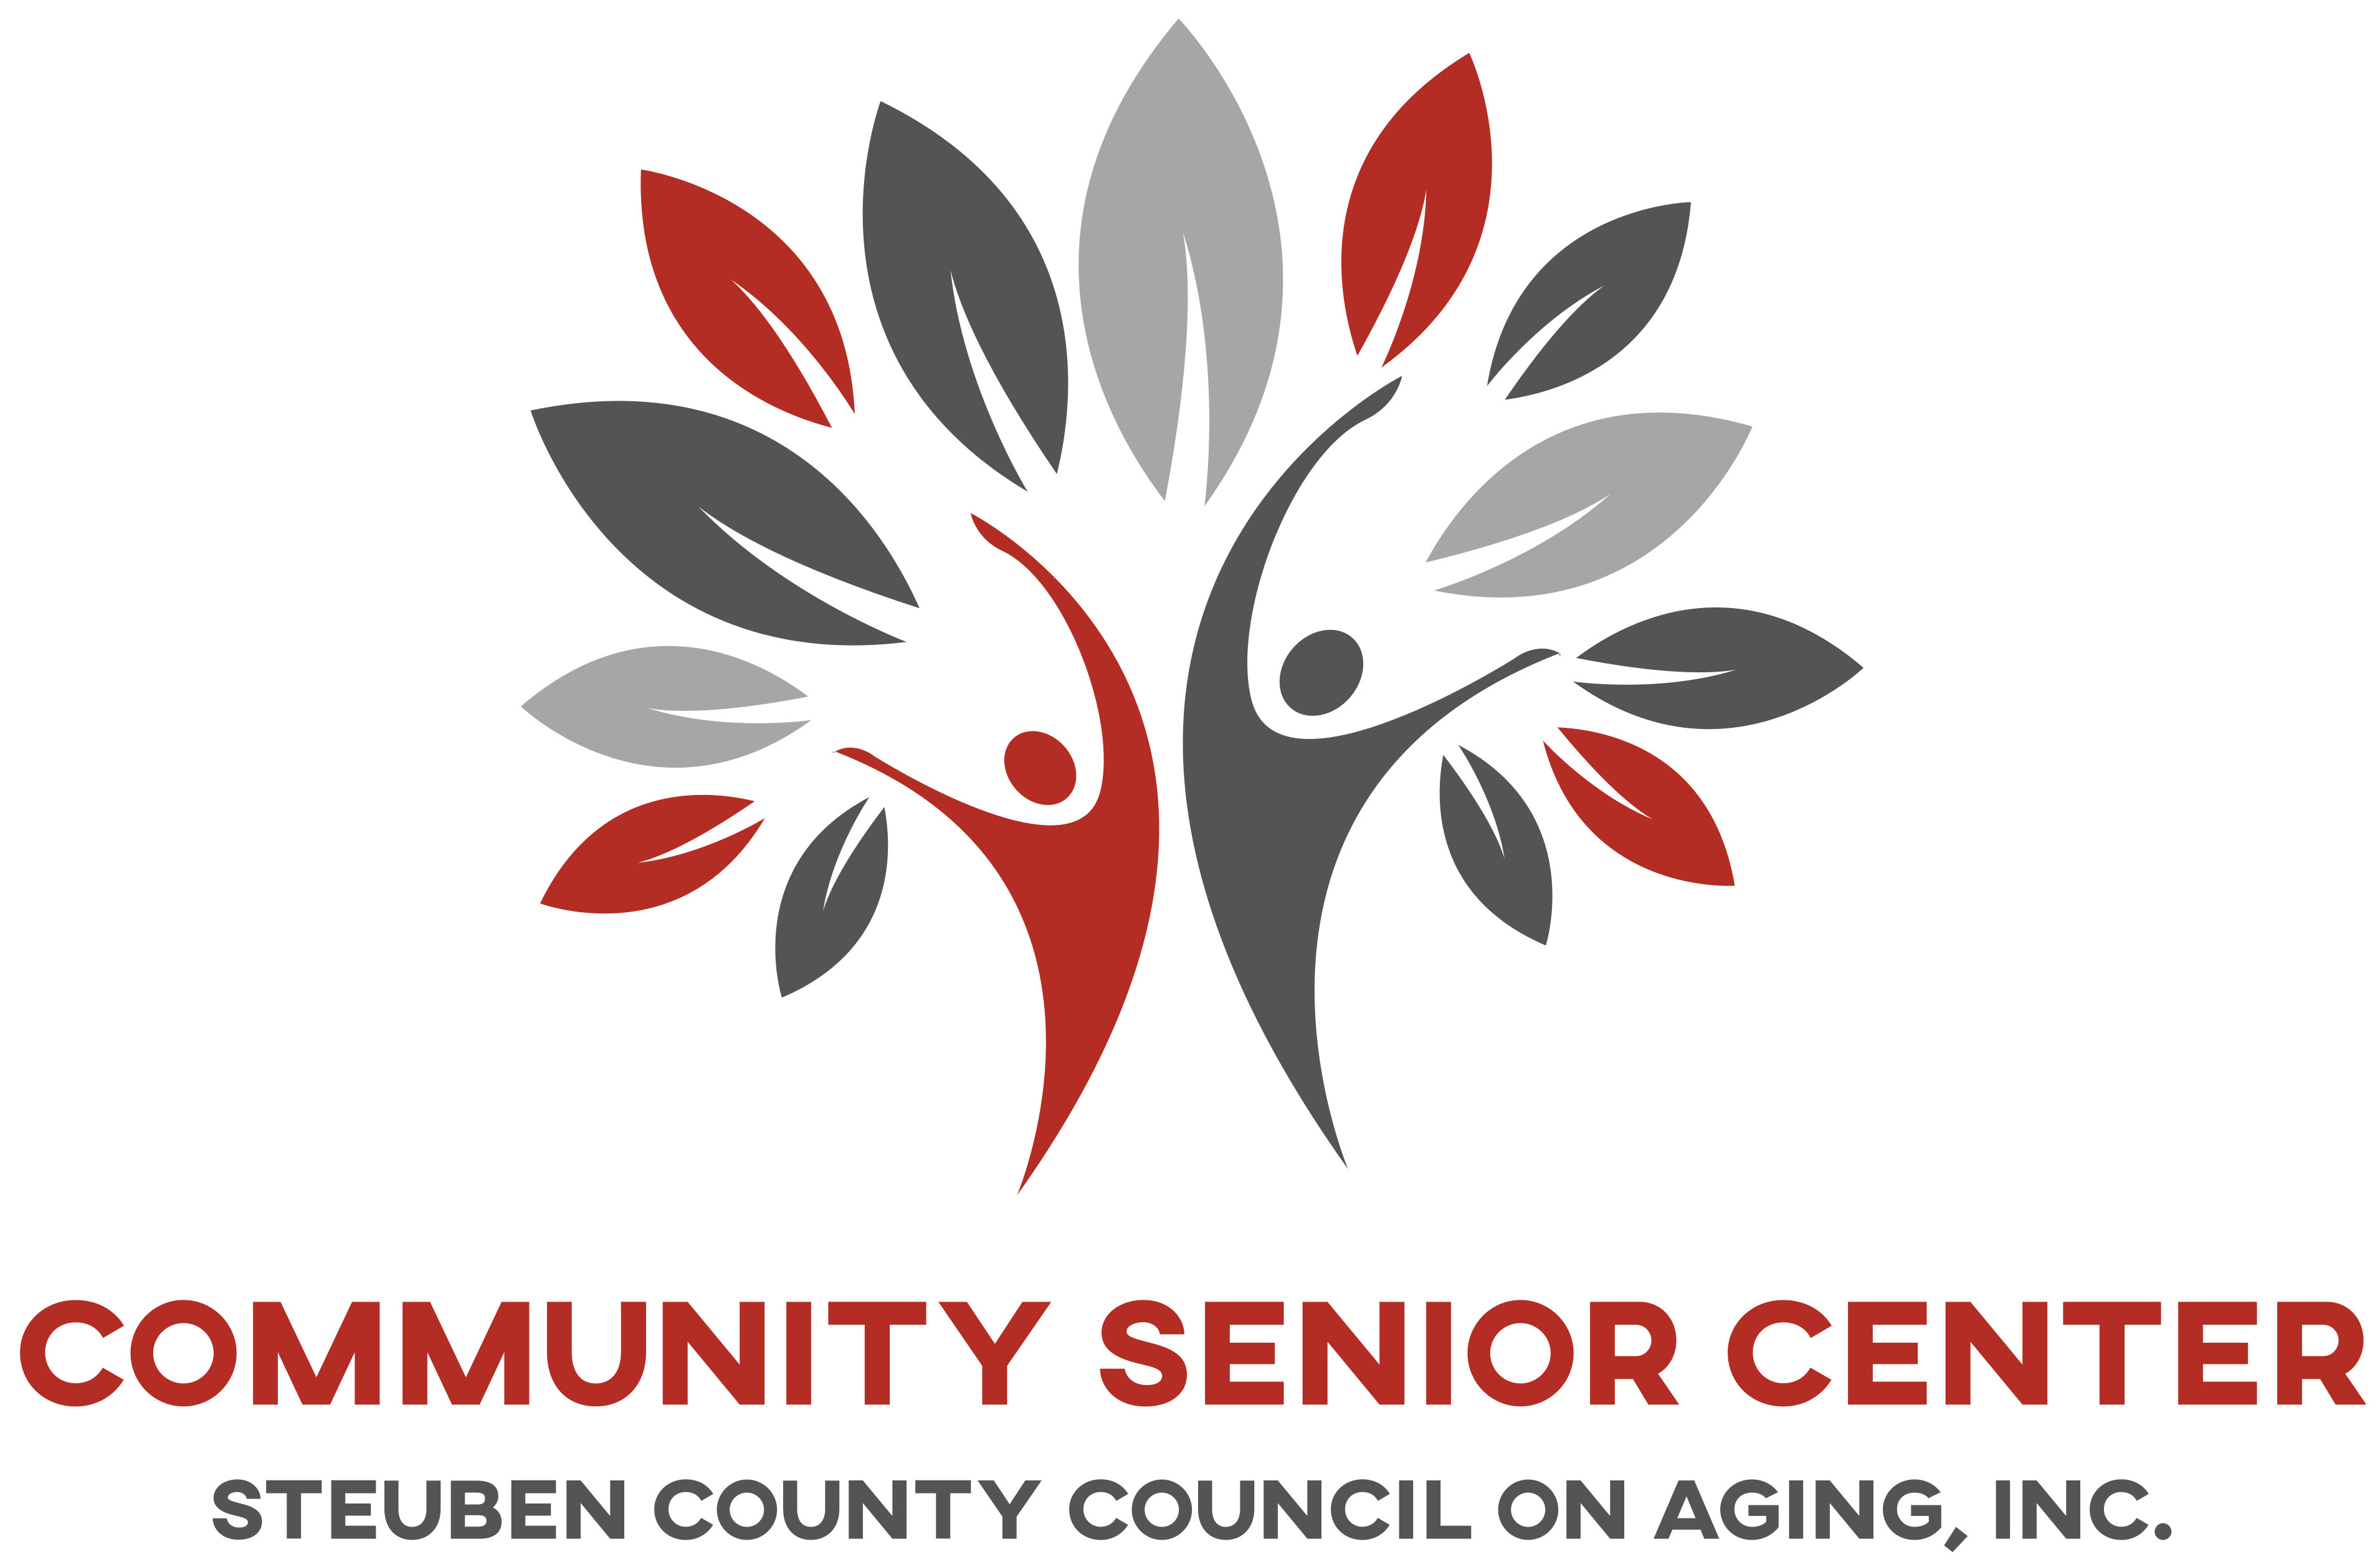 Steuben County Council on Aging, Inc.